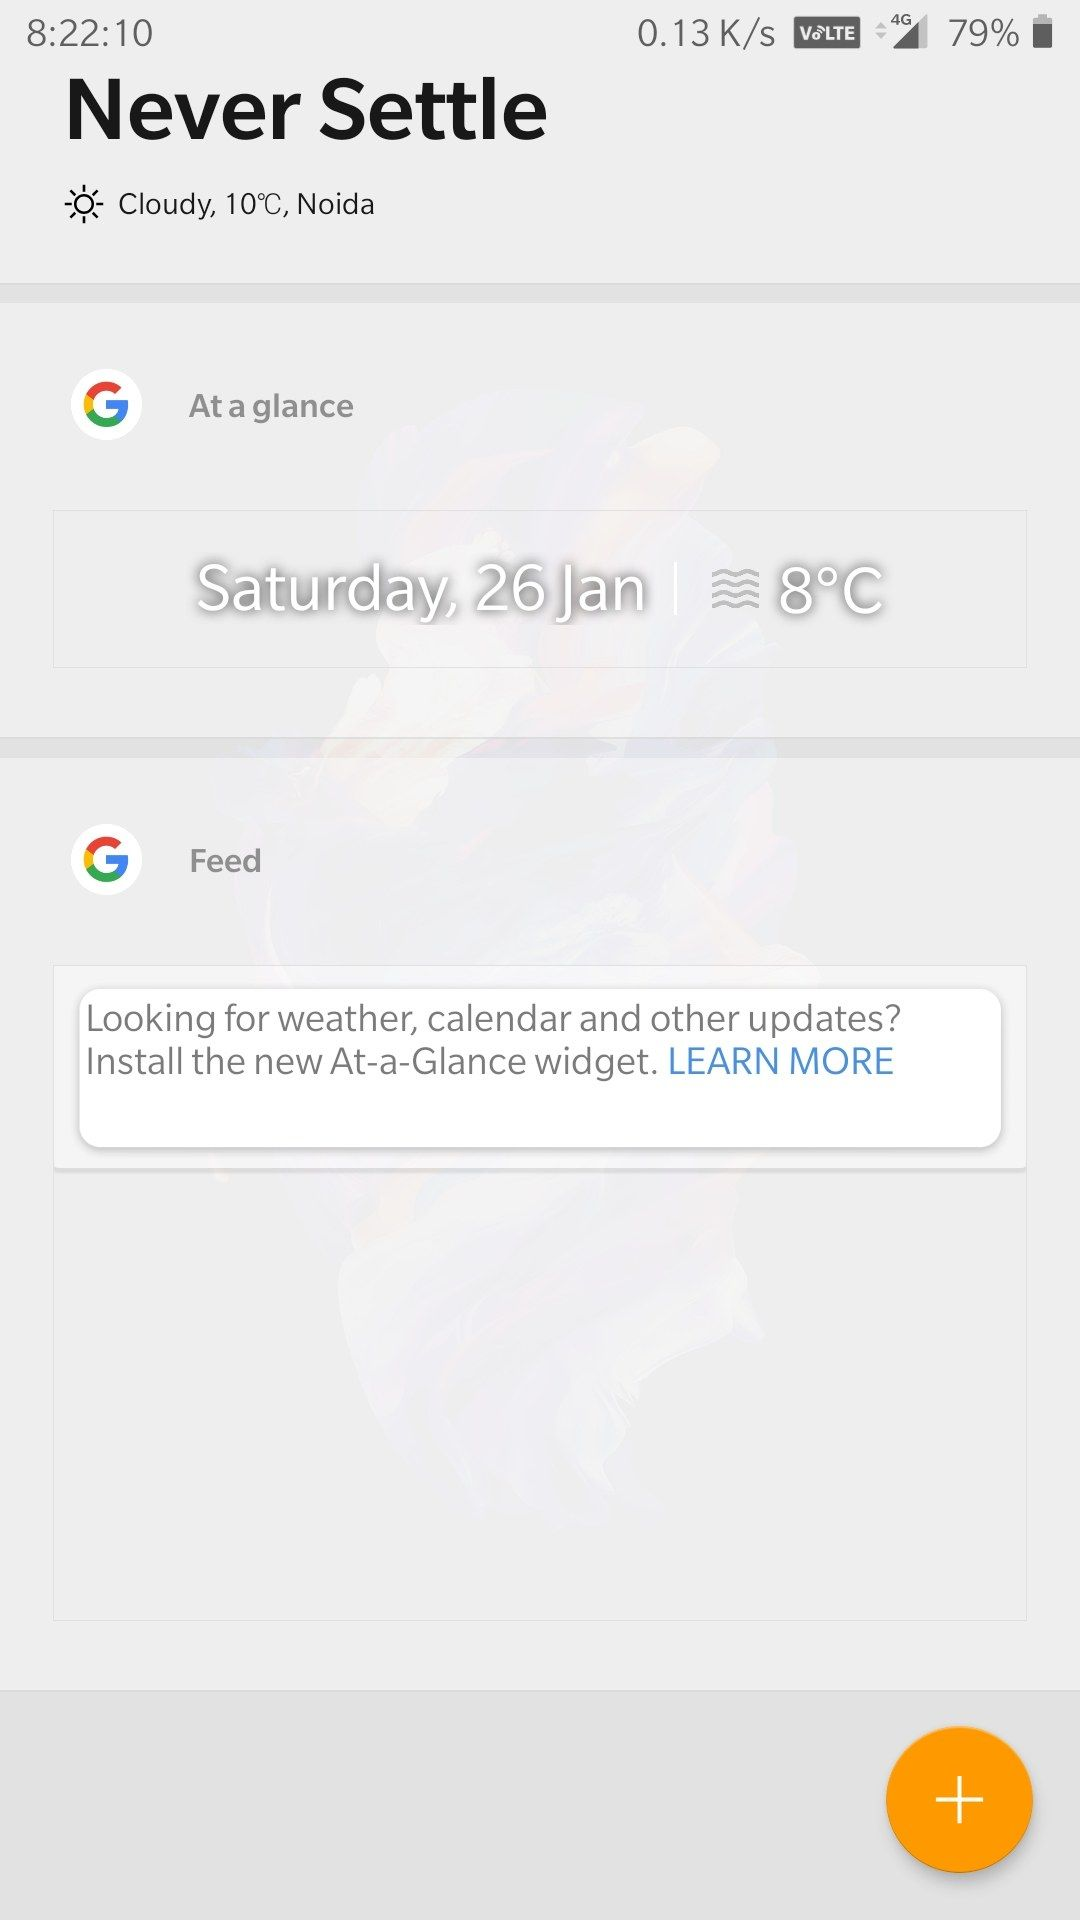 Google feed is not working - OnePlus Community